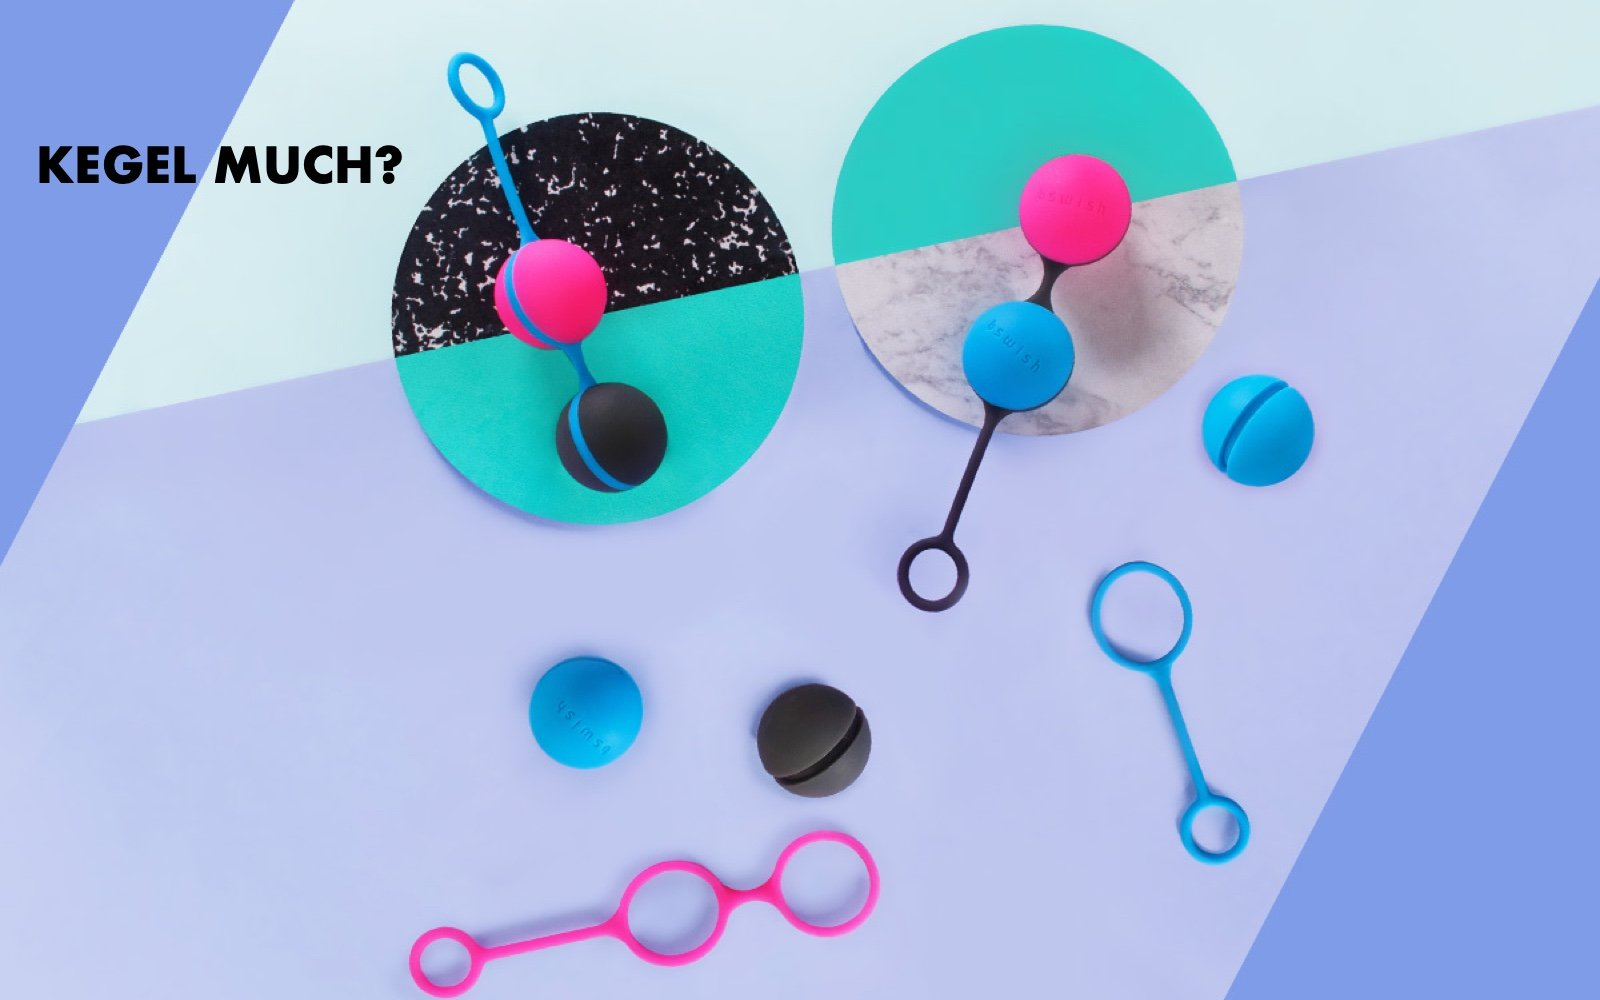 Kegel Much? Discover Kegel Exercisers - Rolik®